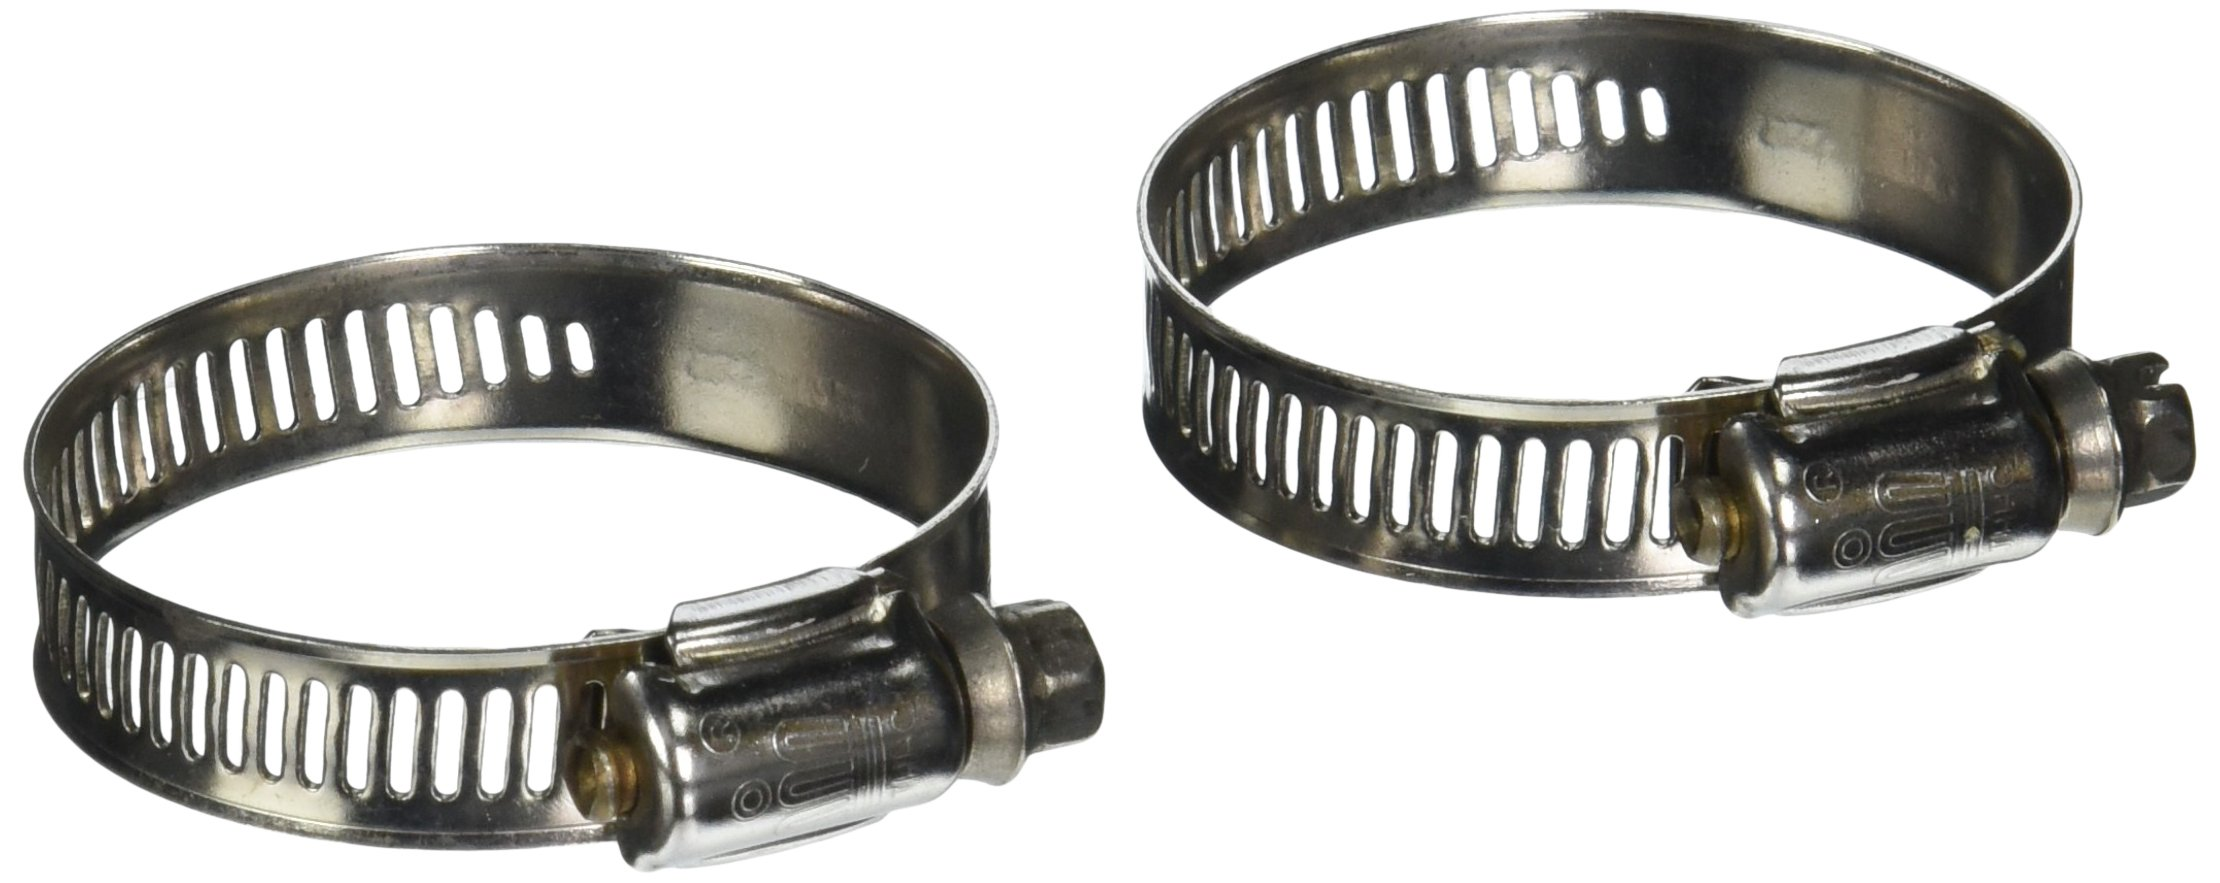 Laguna Stainless Steel Non-Kink Hosing Hose Clamp, 1-1/16 to 2-Inch, 2-Pack